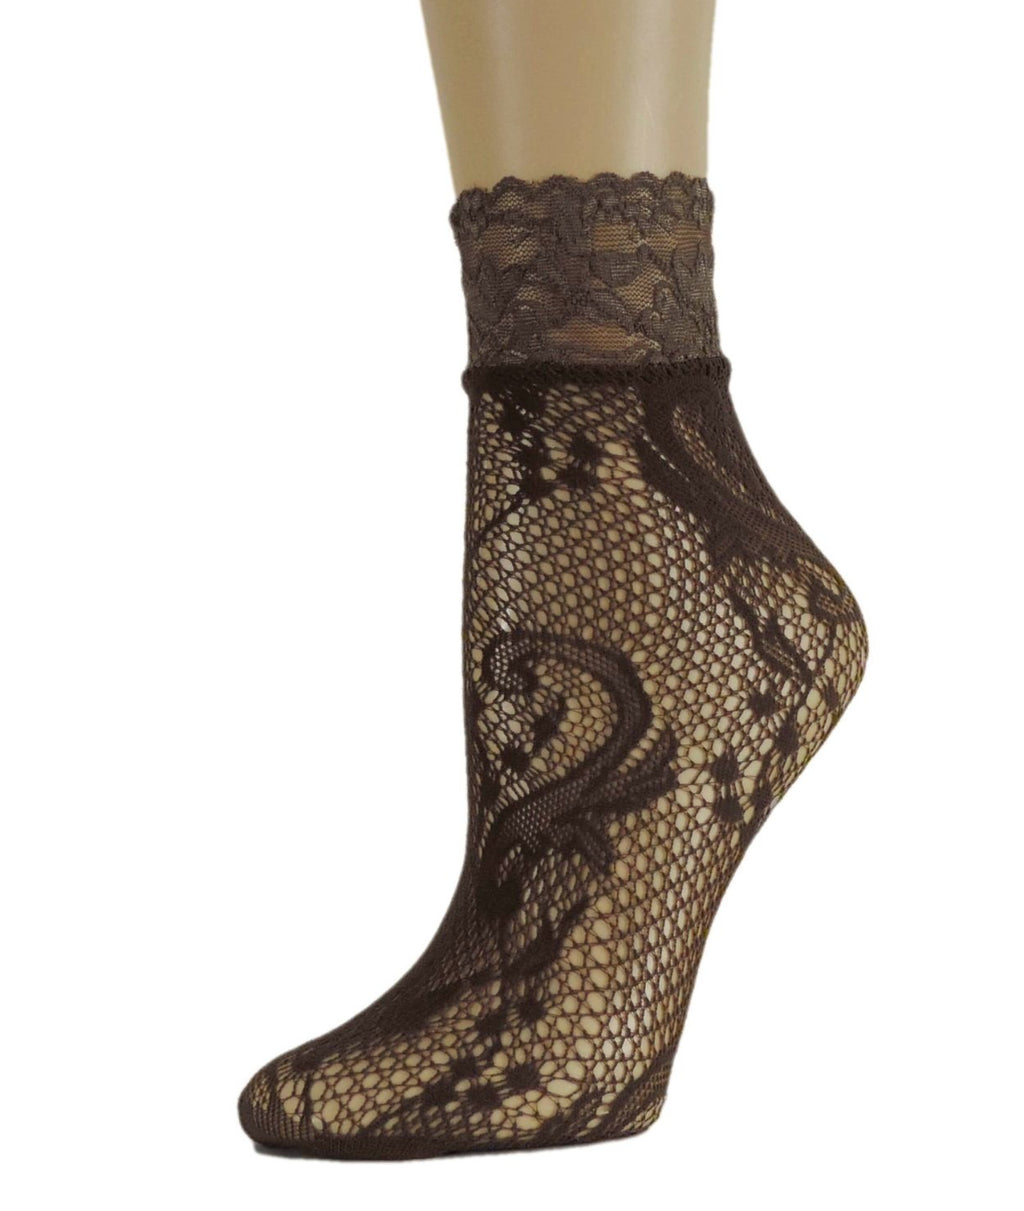 Wild Flower Mesh Socks - Global Trendz Fashion®